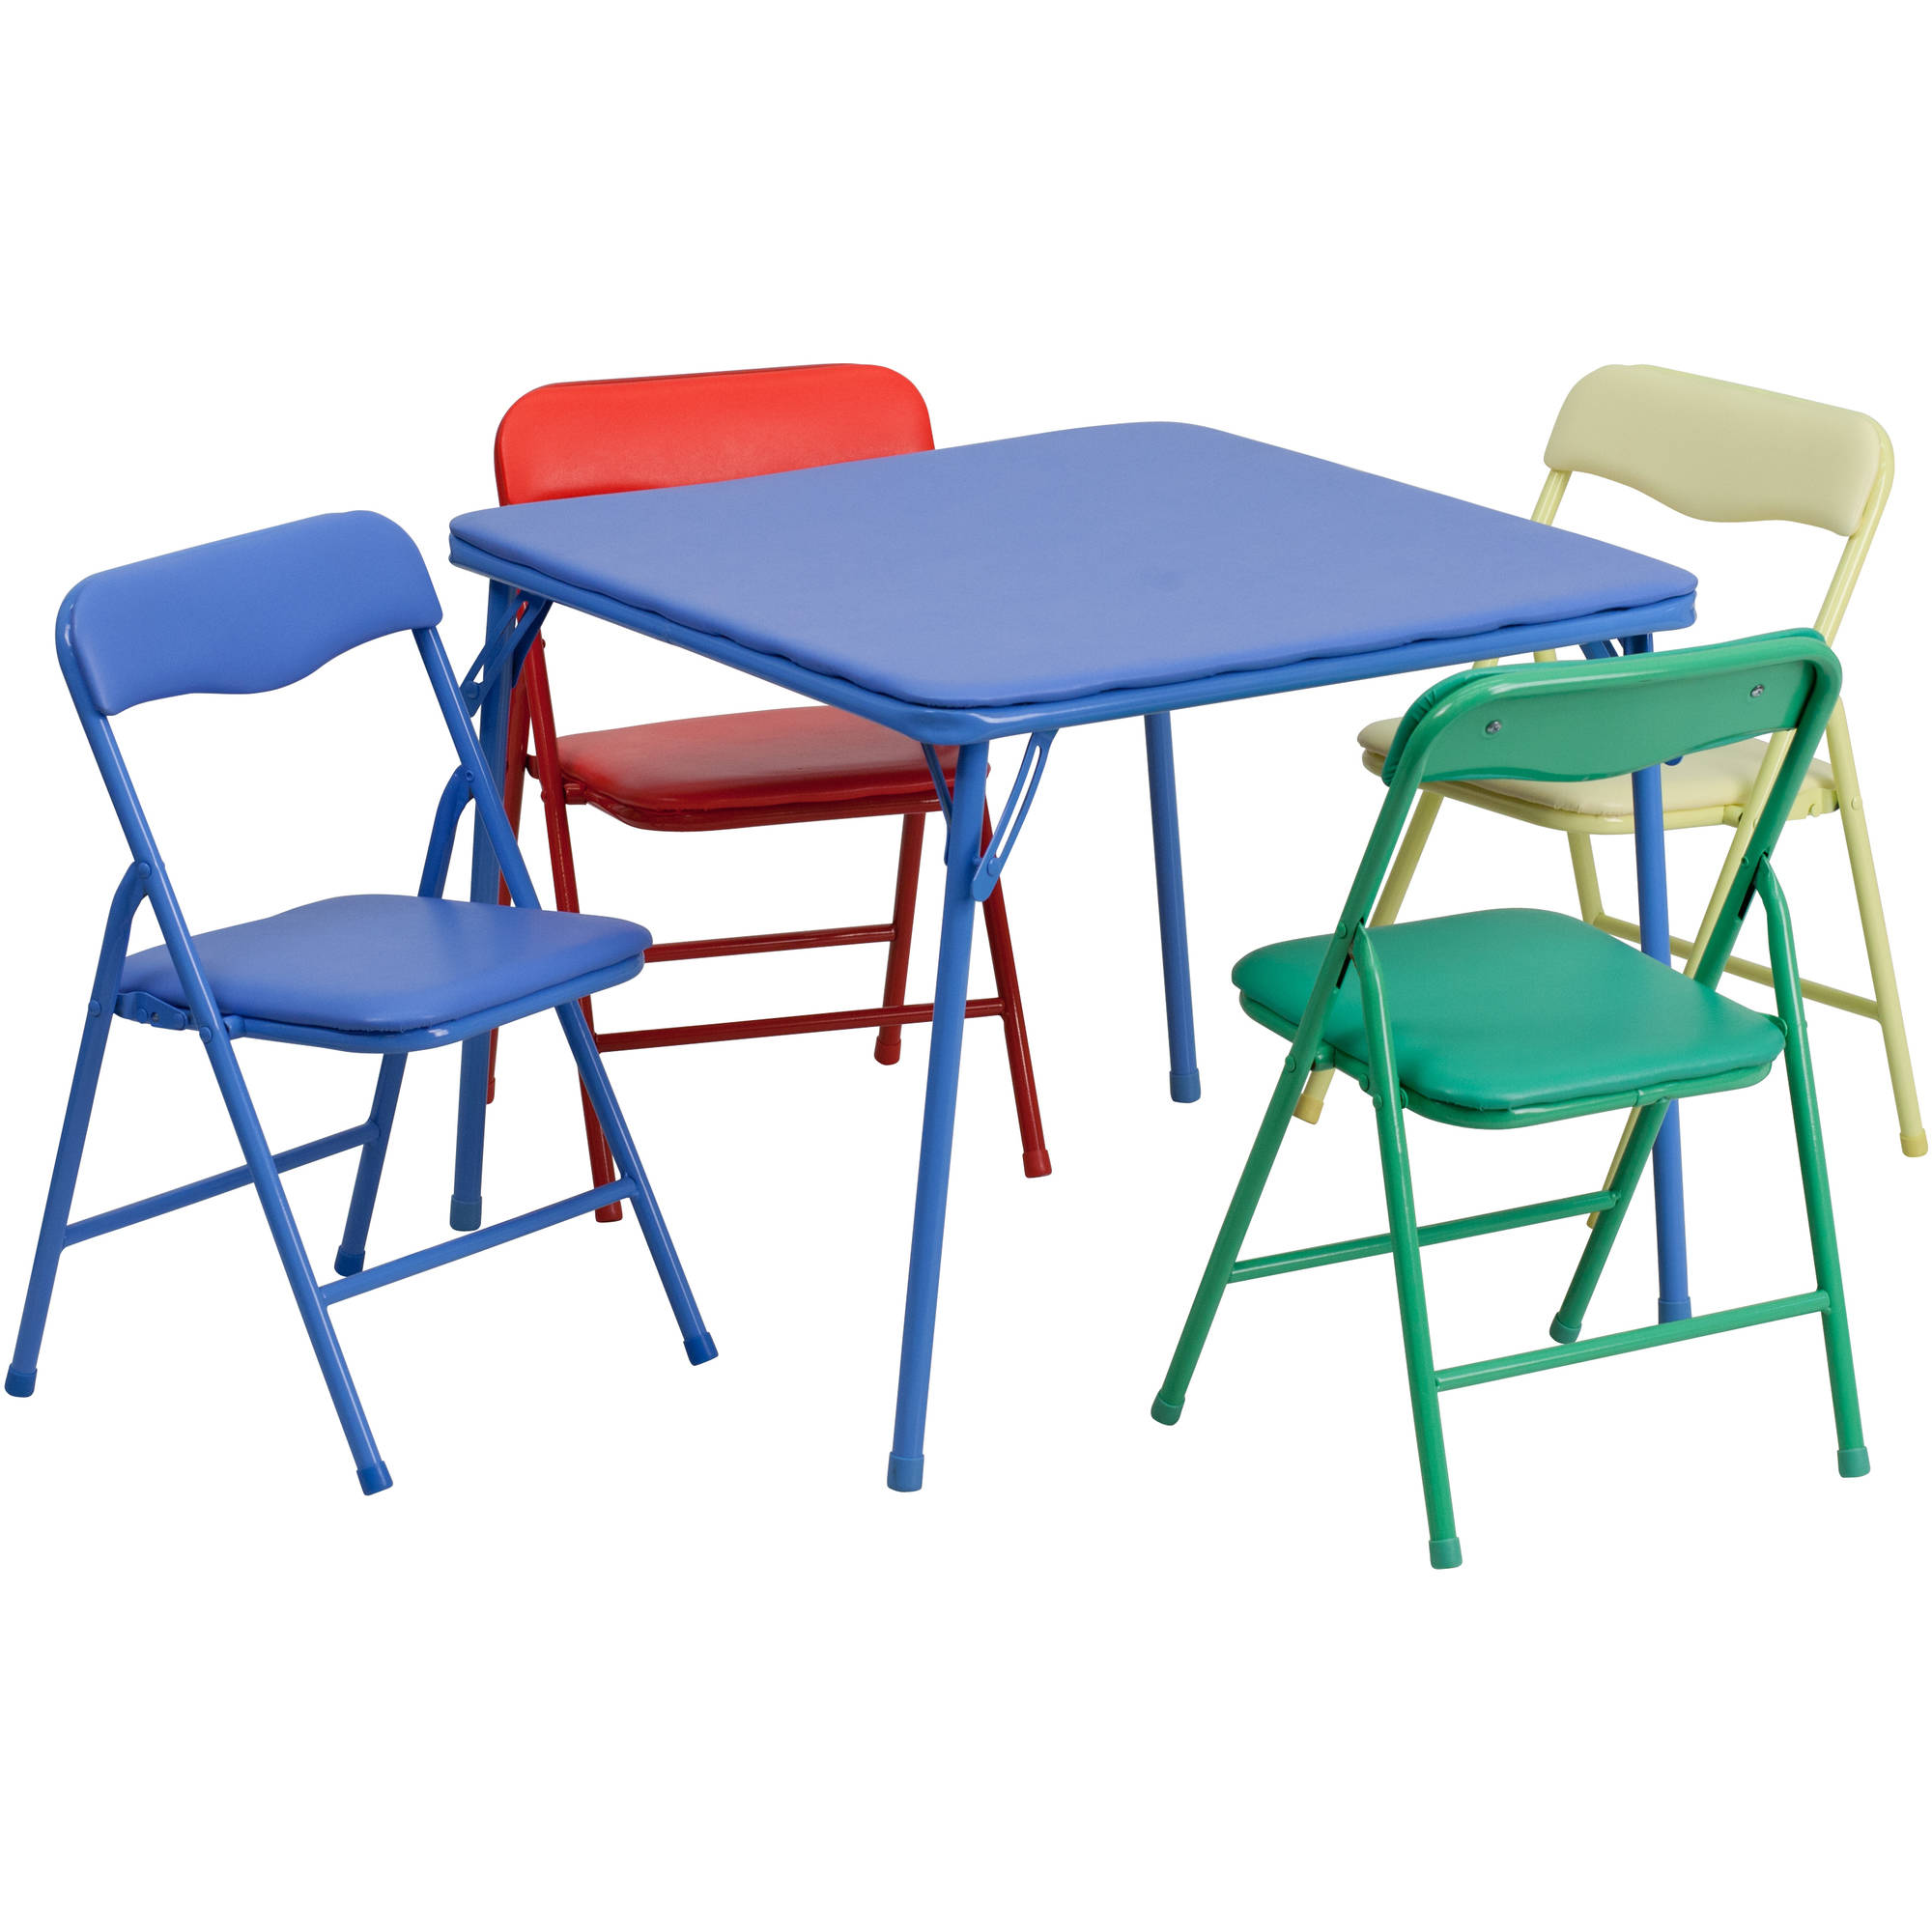 Delightful Flash Furniture Kids Colorful 5 Piece Folding Table And Chair Set